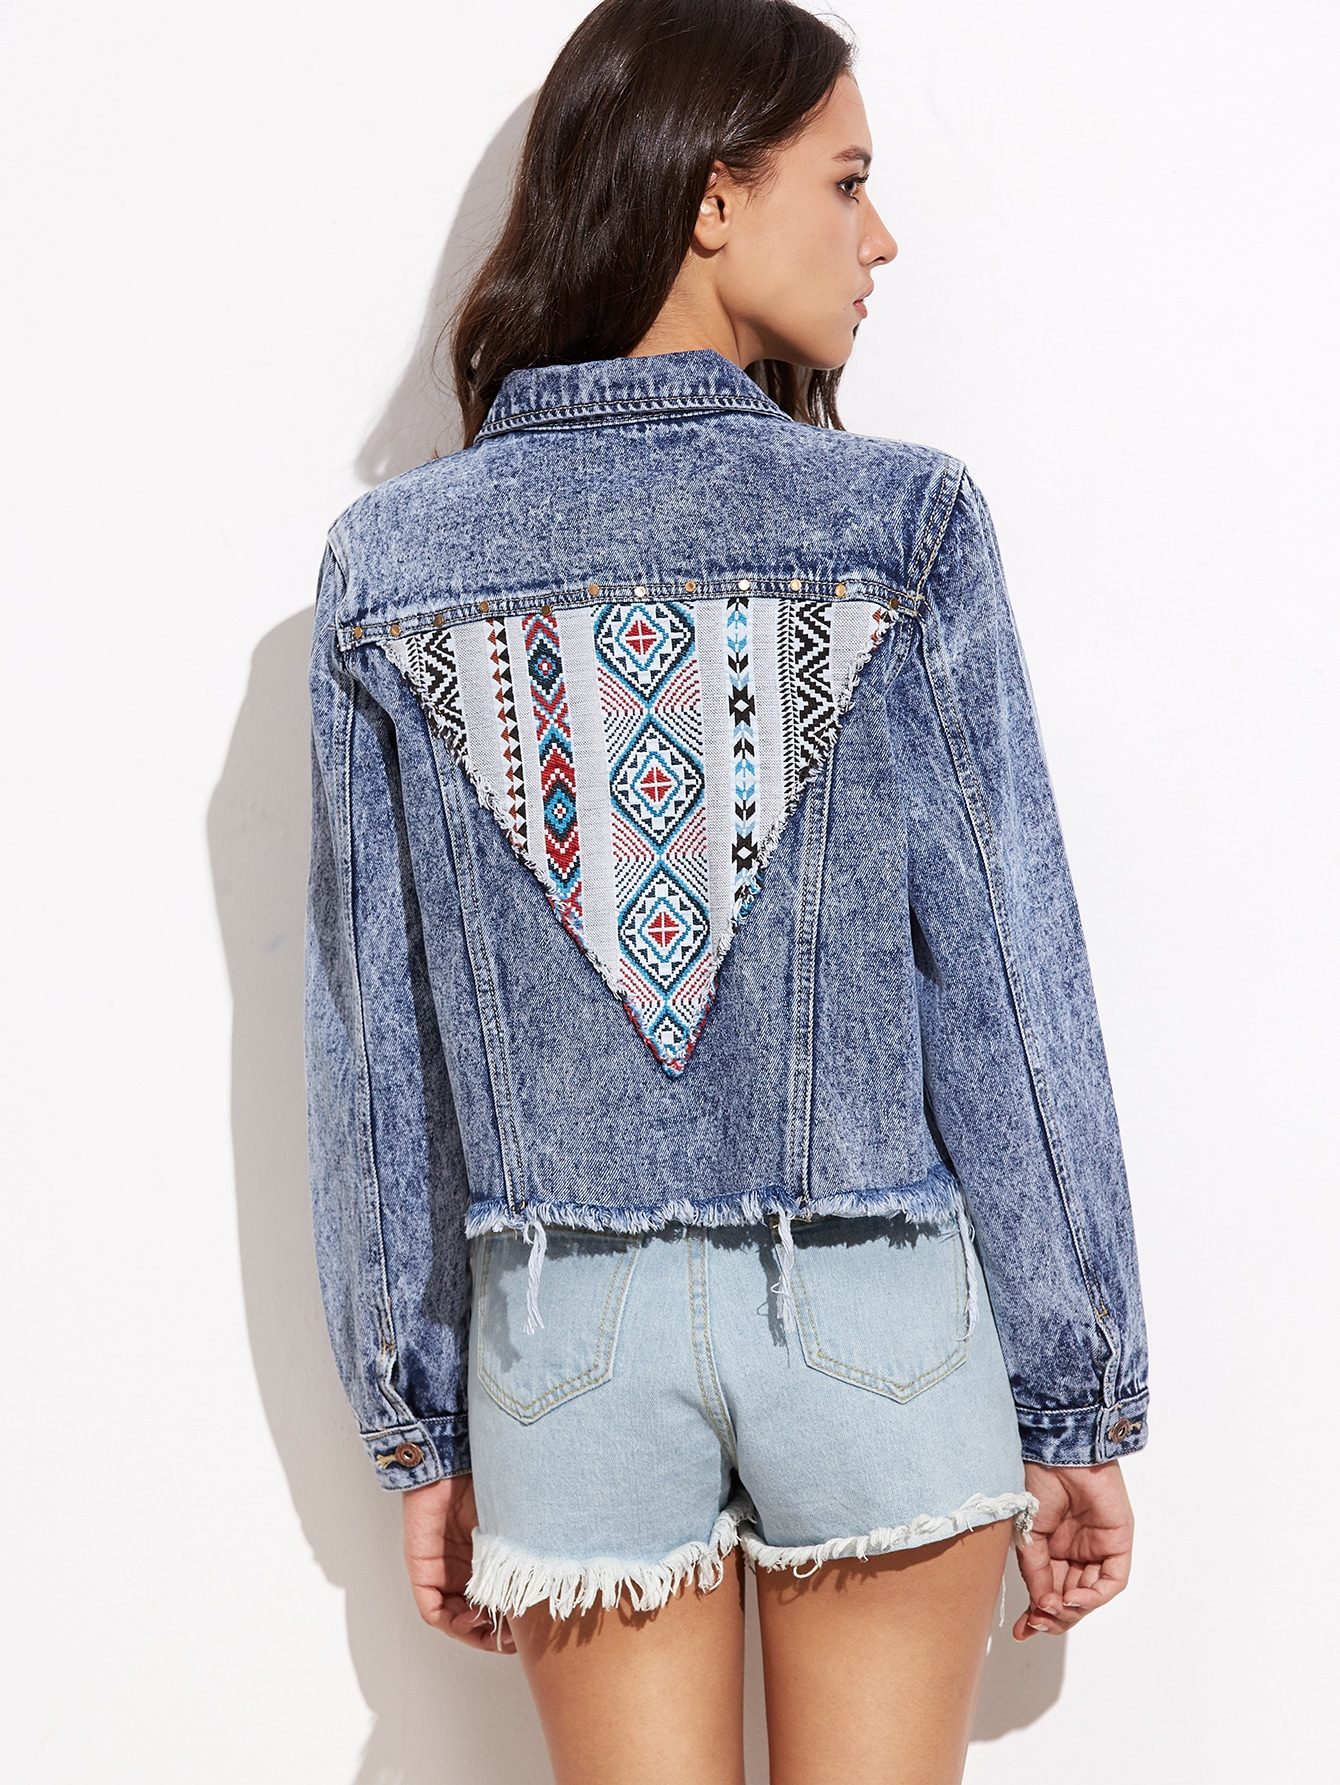 Blue Embroidered Tribal Patch Bleach Wash Frayed Denim JacketBlue Embroidered Tribal Patch Bleach Wash Frayed Denim Jacket<br><br>color: Blue<br>size: L,M,S